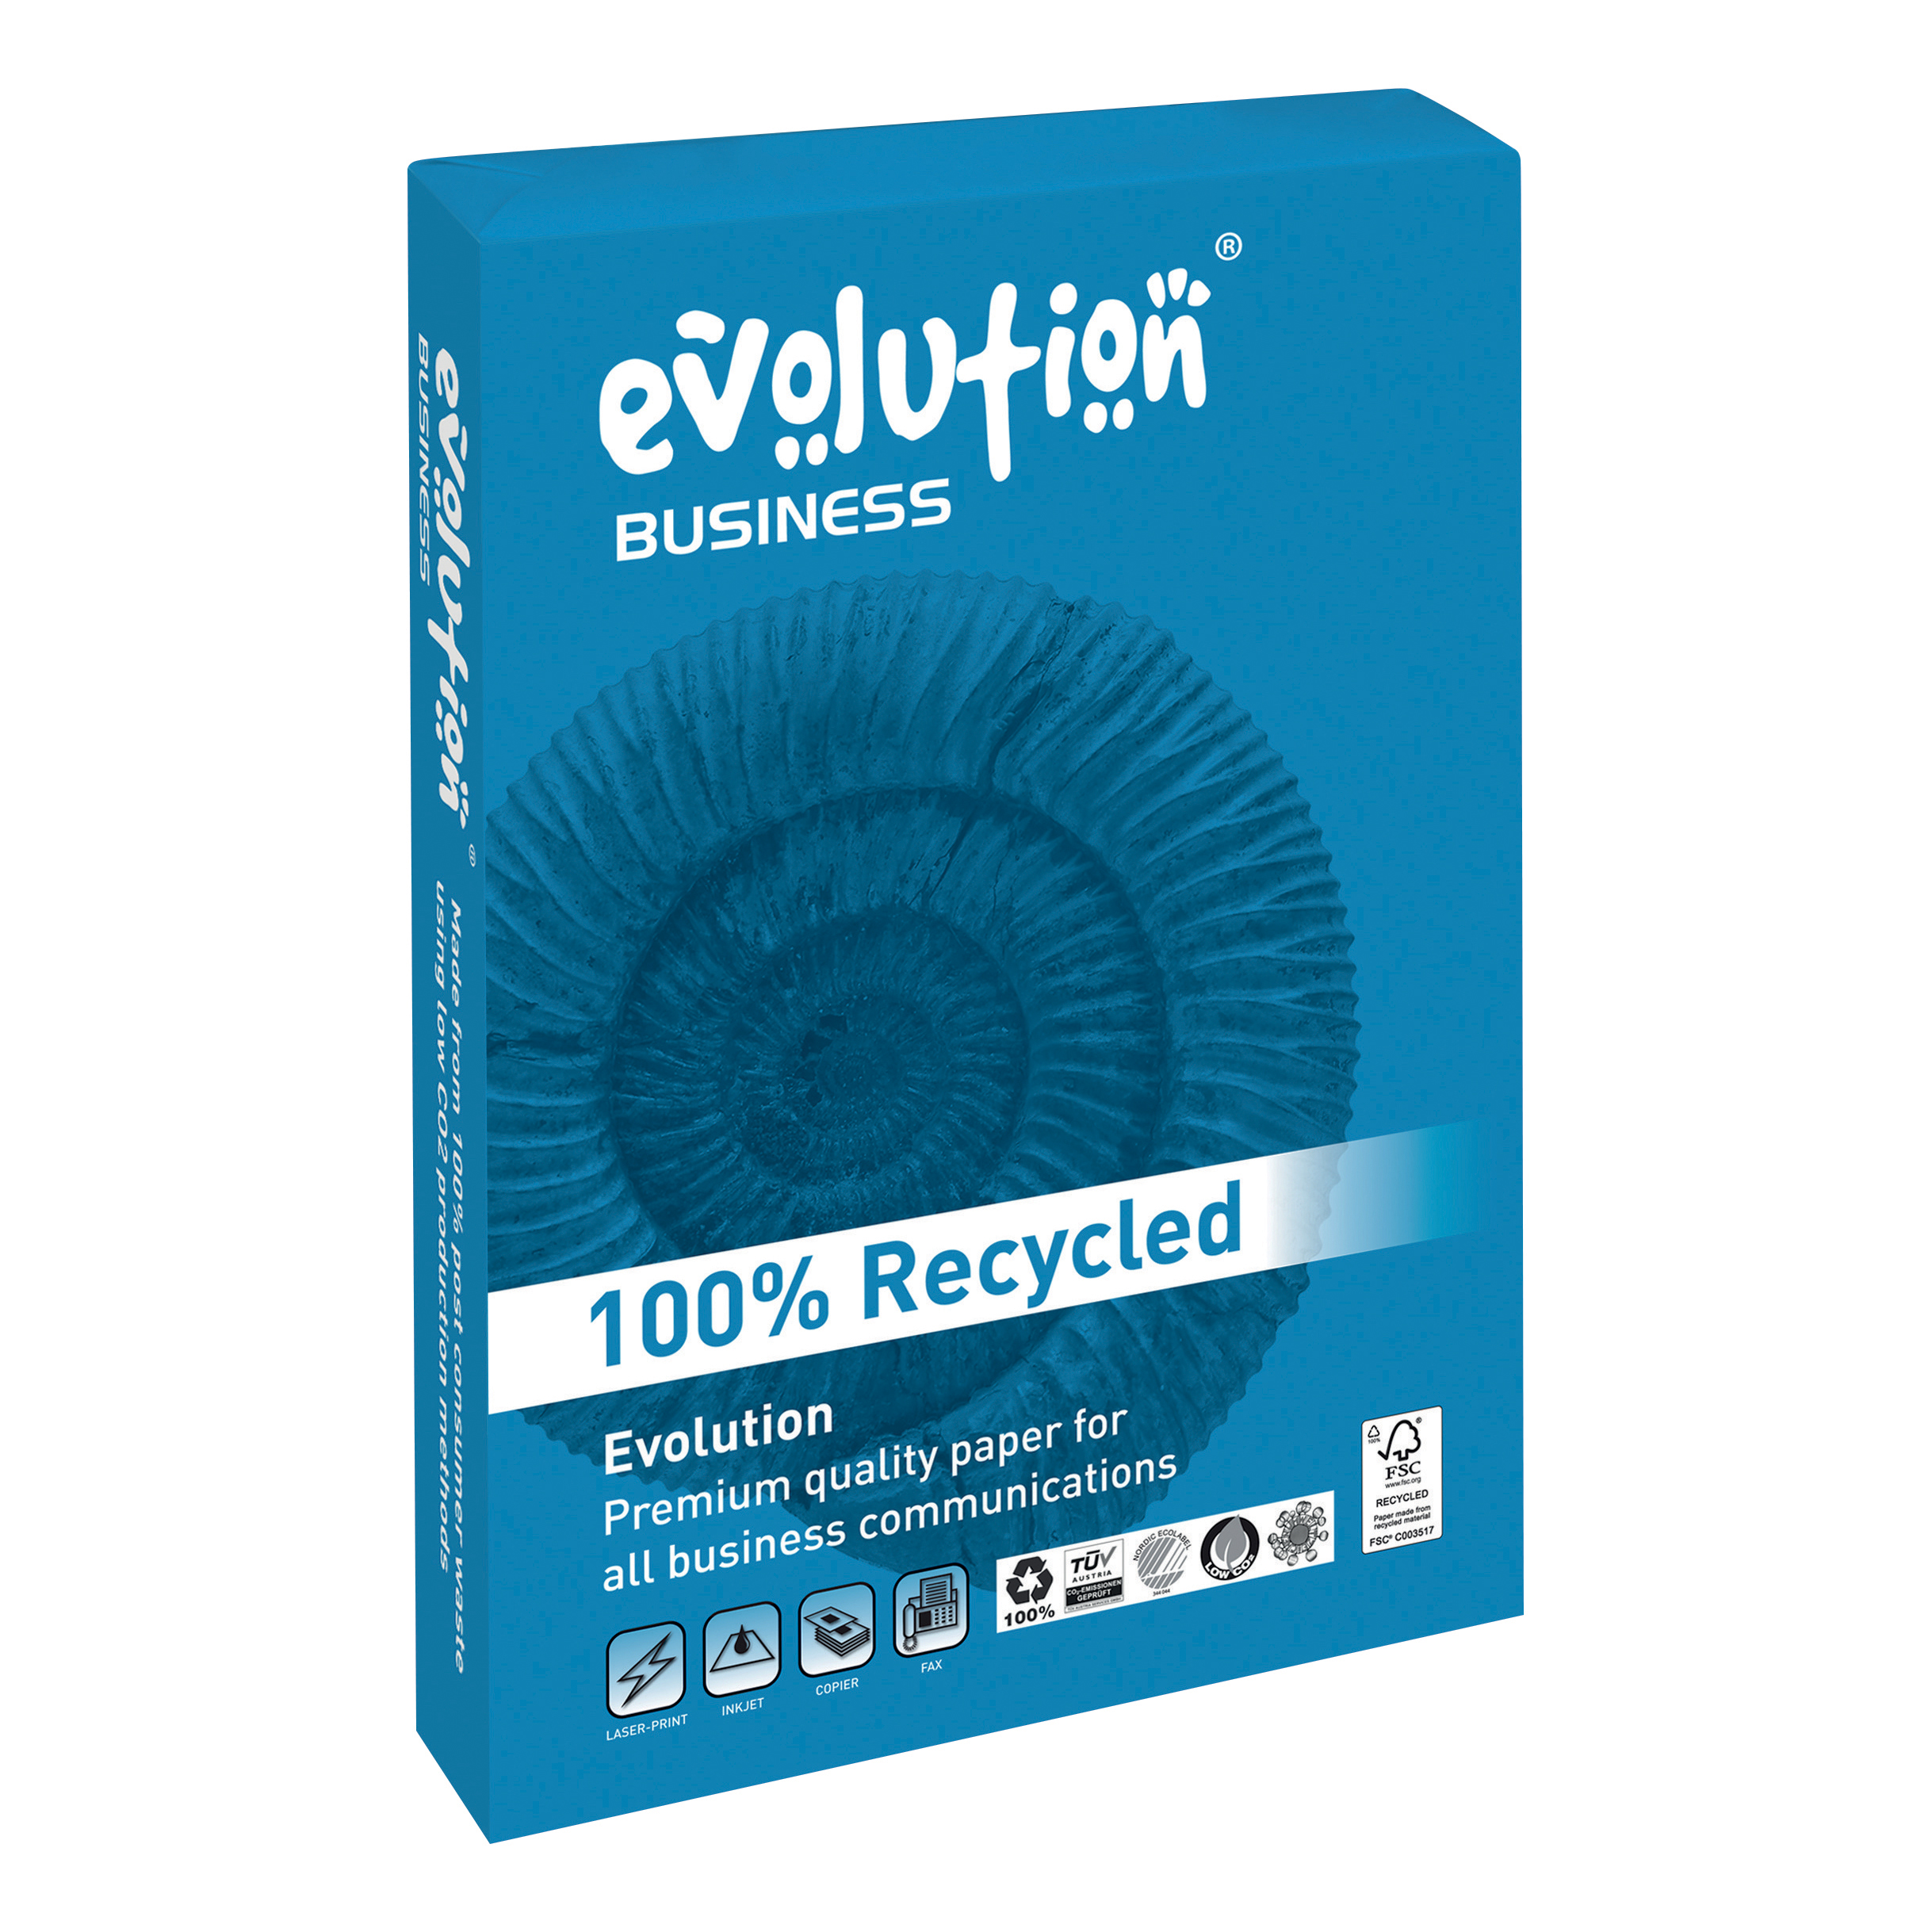 Evolution Business Paper FSC Recycled Ream-wrapped 100gsm A4 White Ref EVBU21100 [500 Sheets]